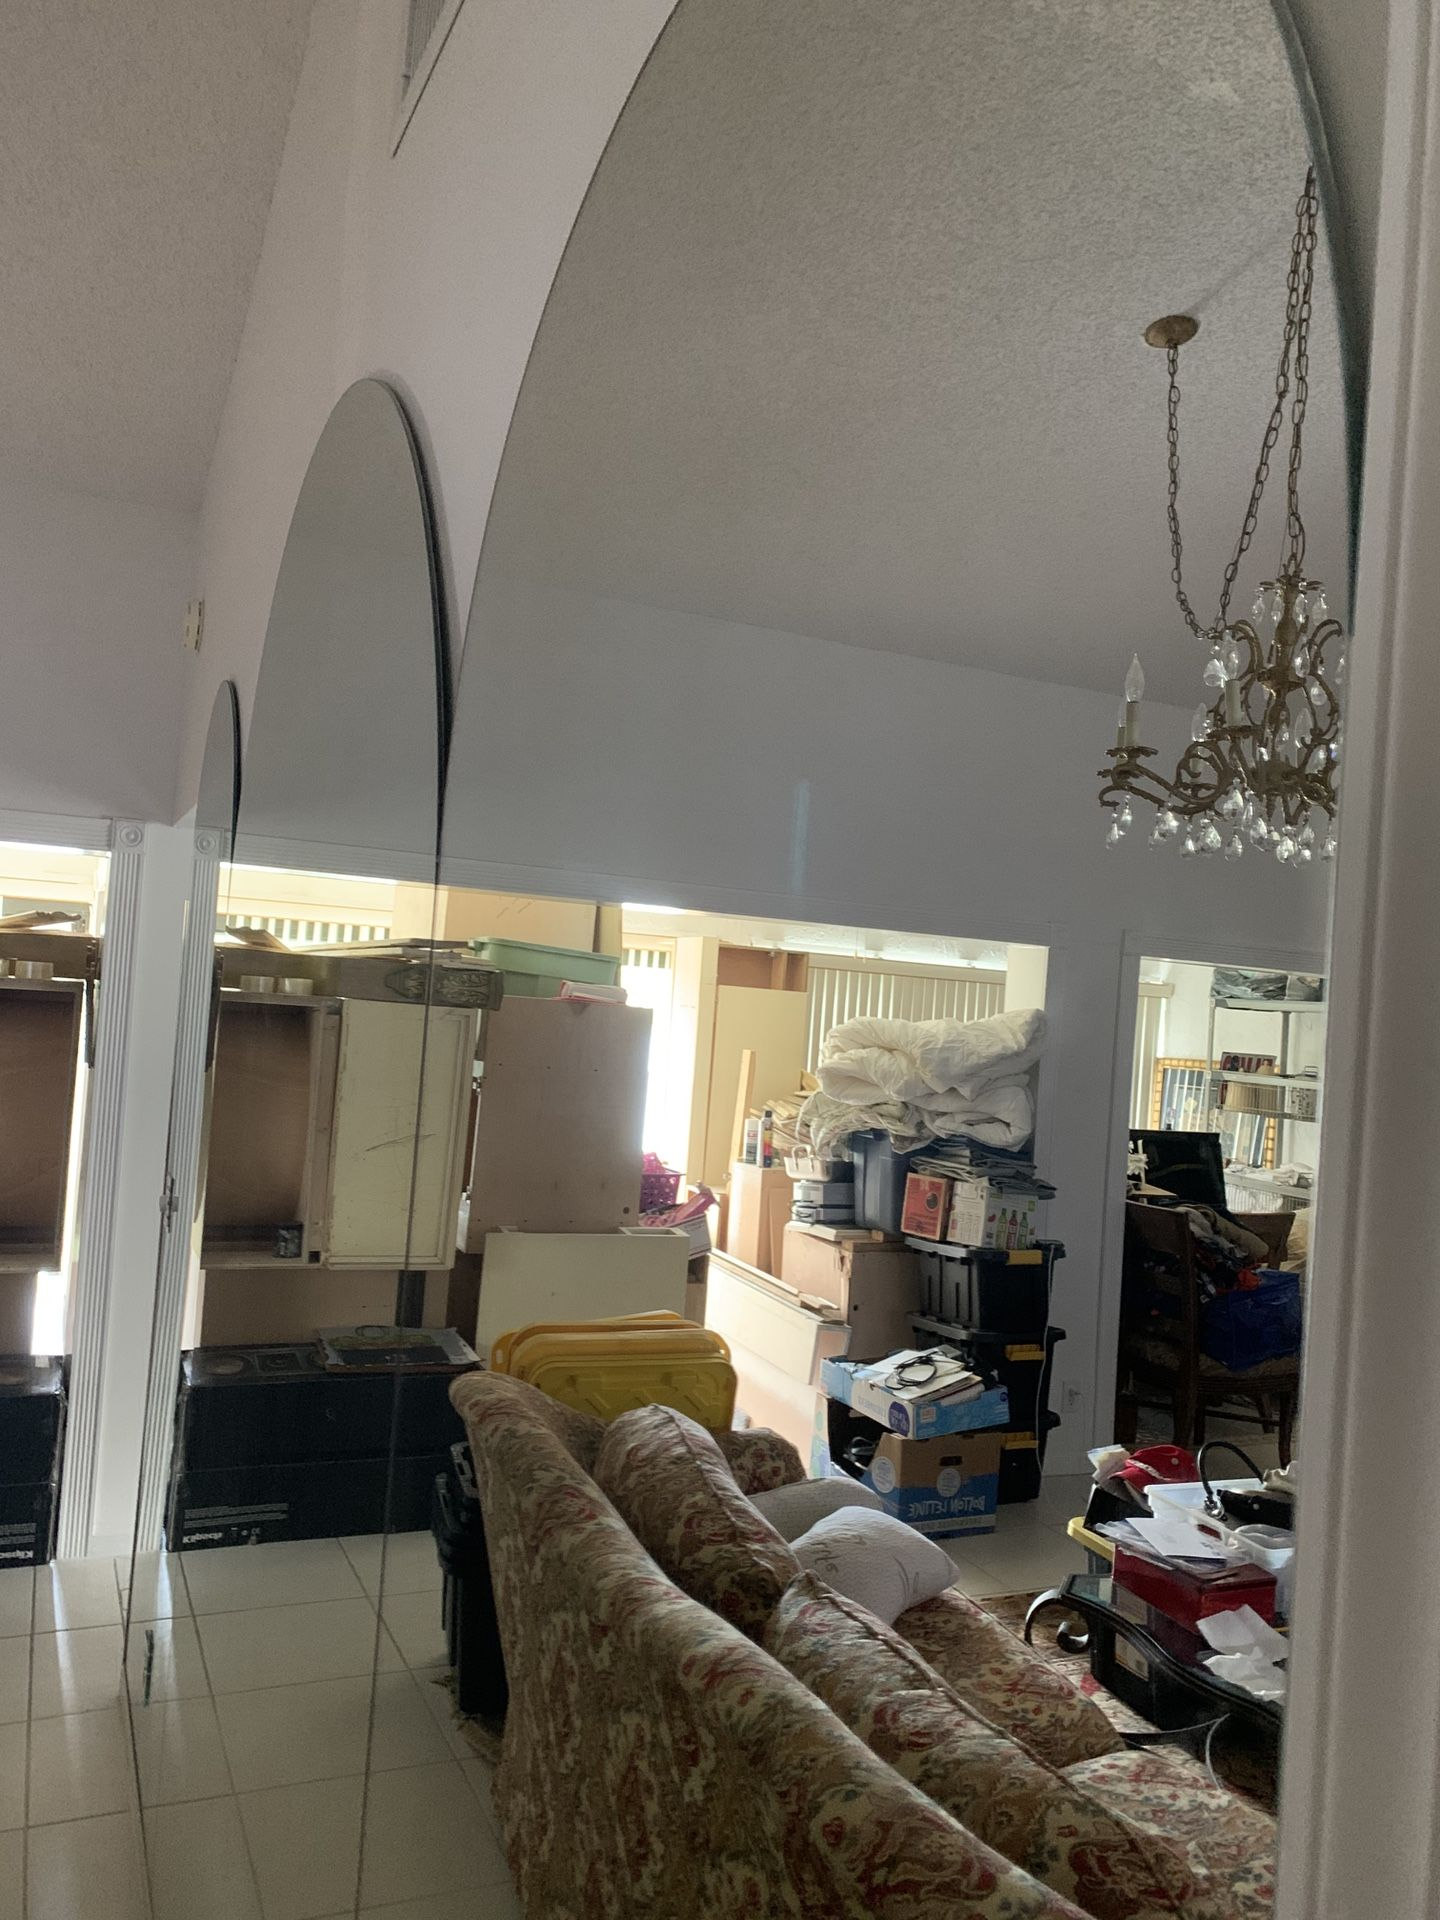 3 Set of Mirrors Oval shaped Already removed from the wall asking $380. All Obo today